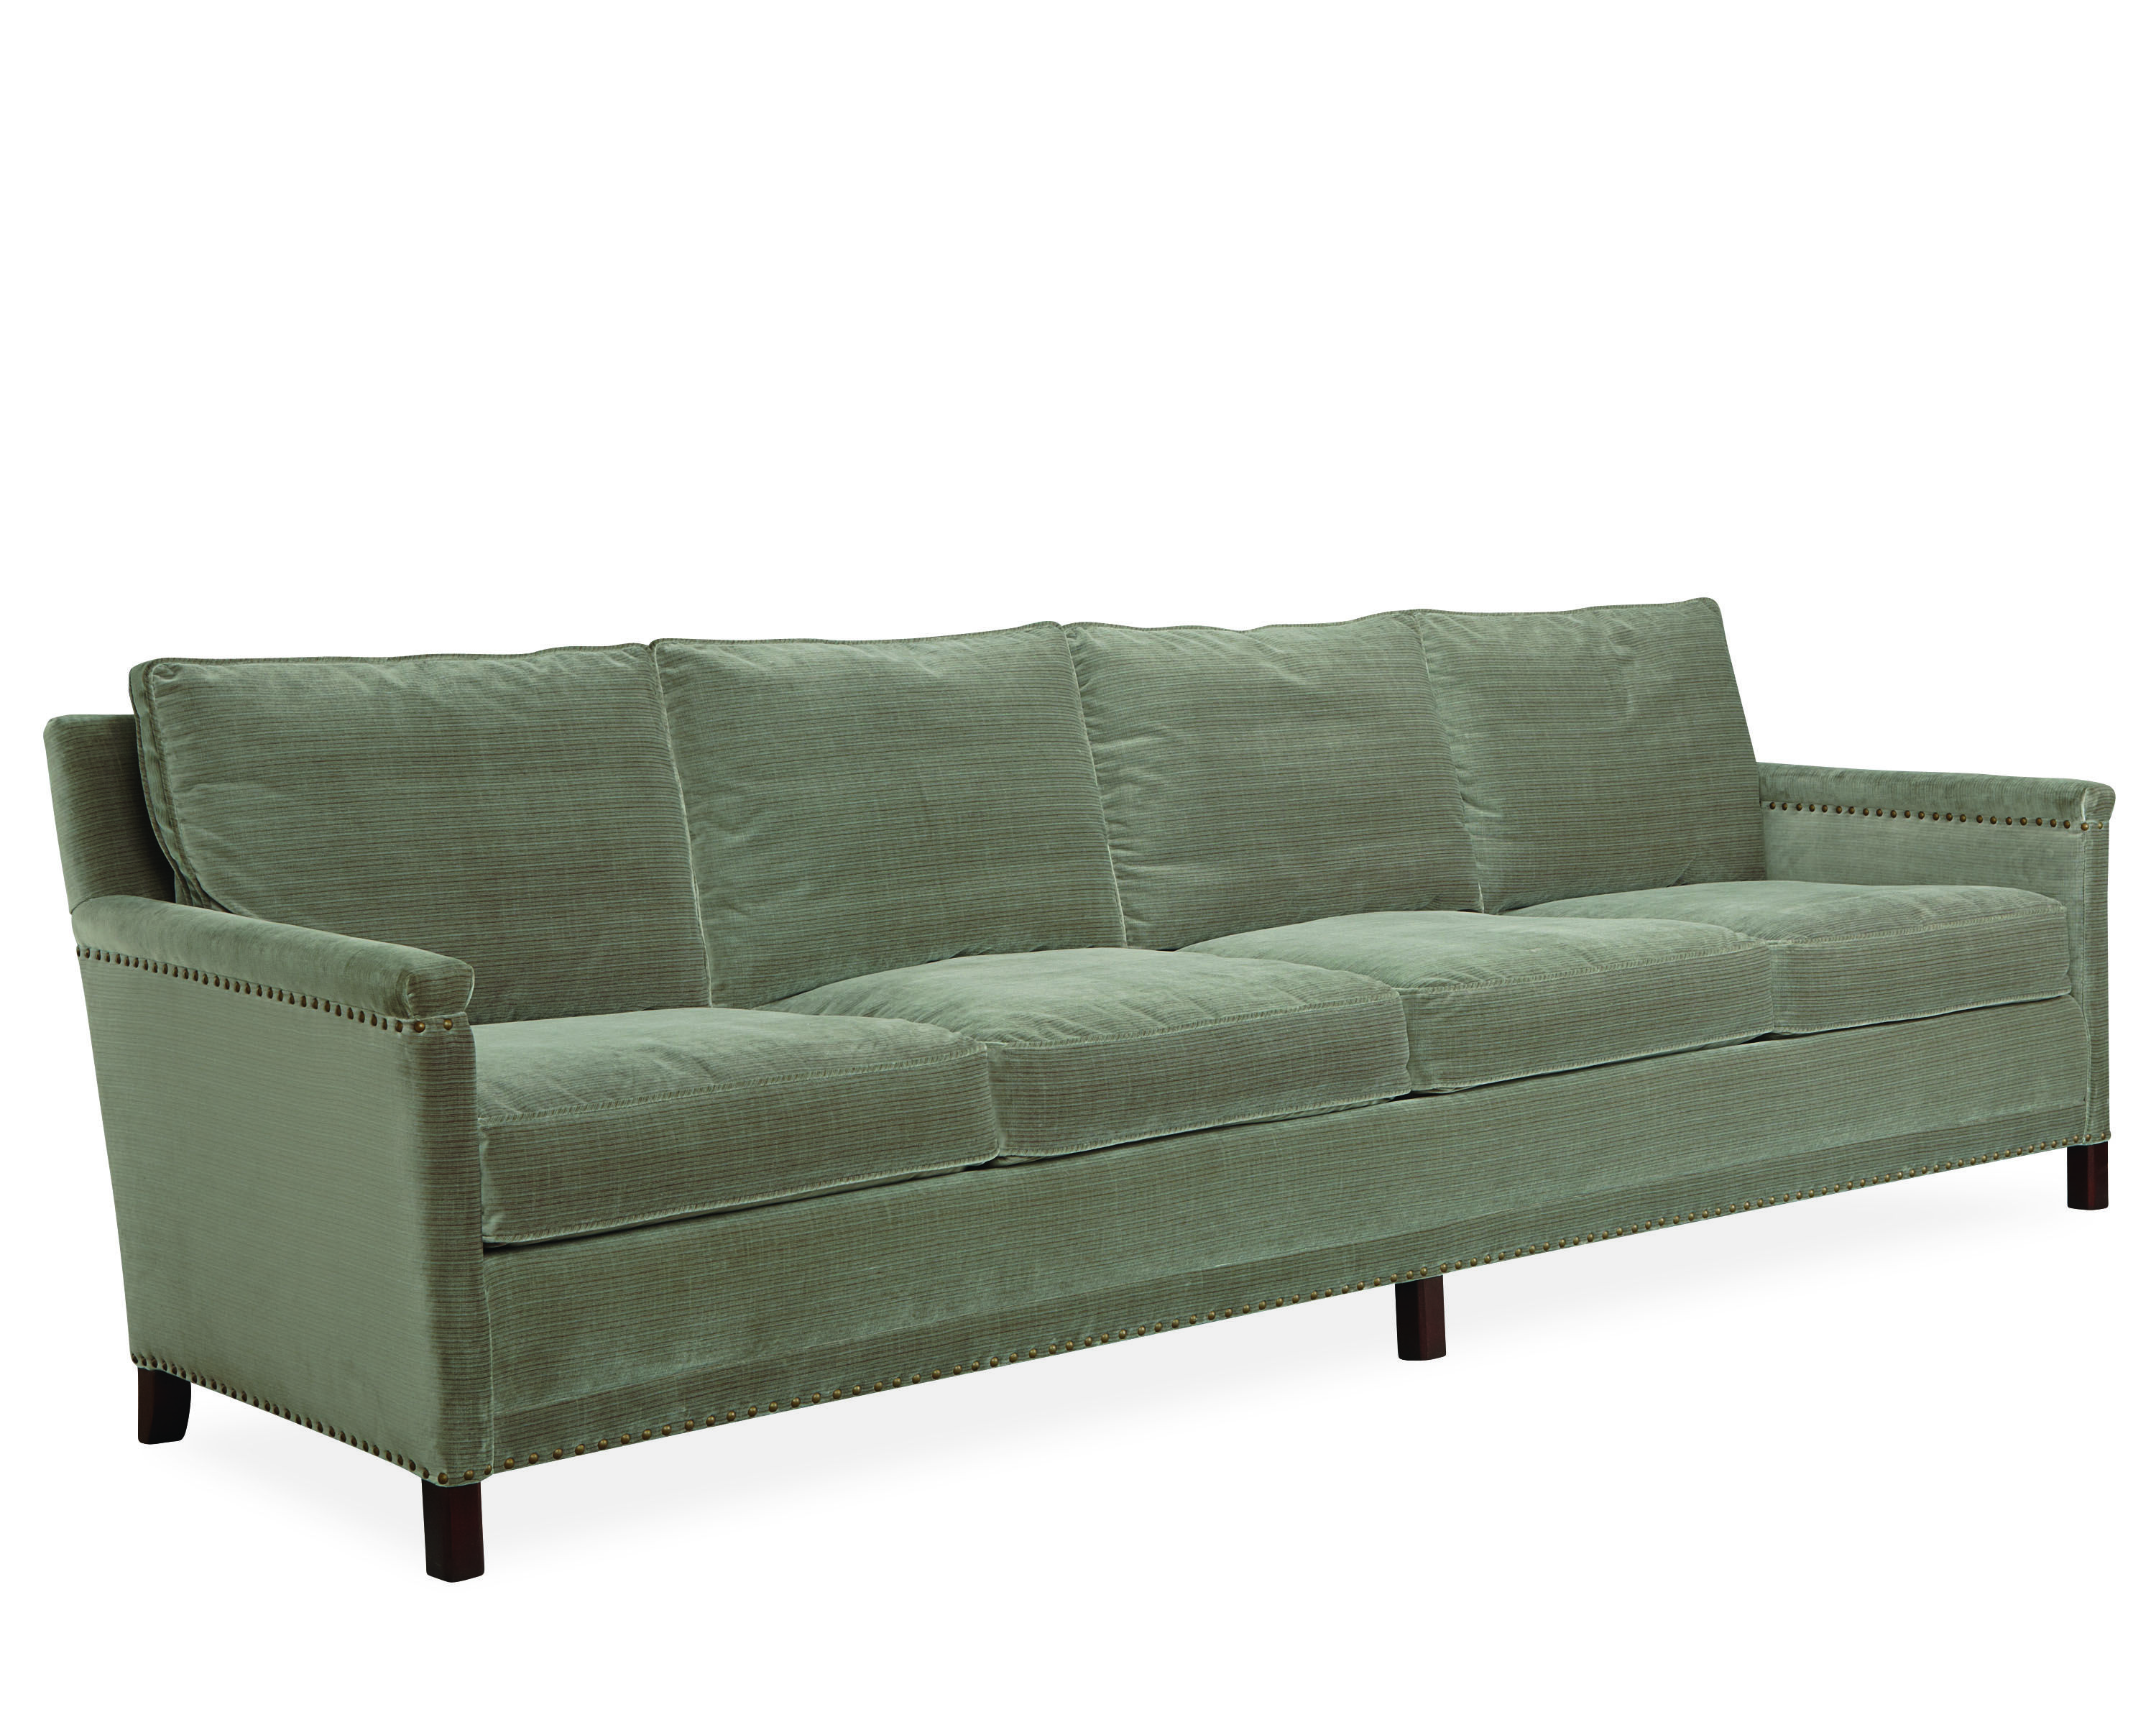 Lee Industries Four Cushion Sofa In Marshall Marlin